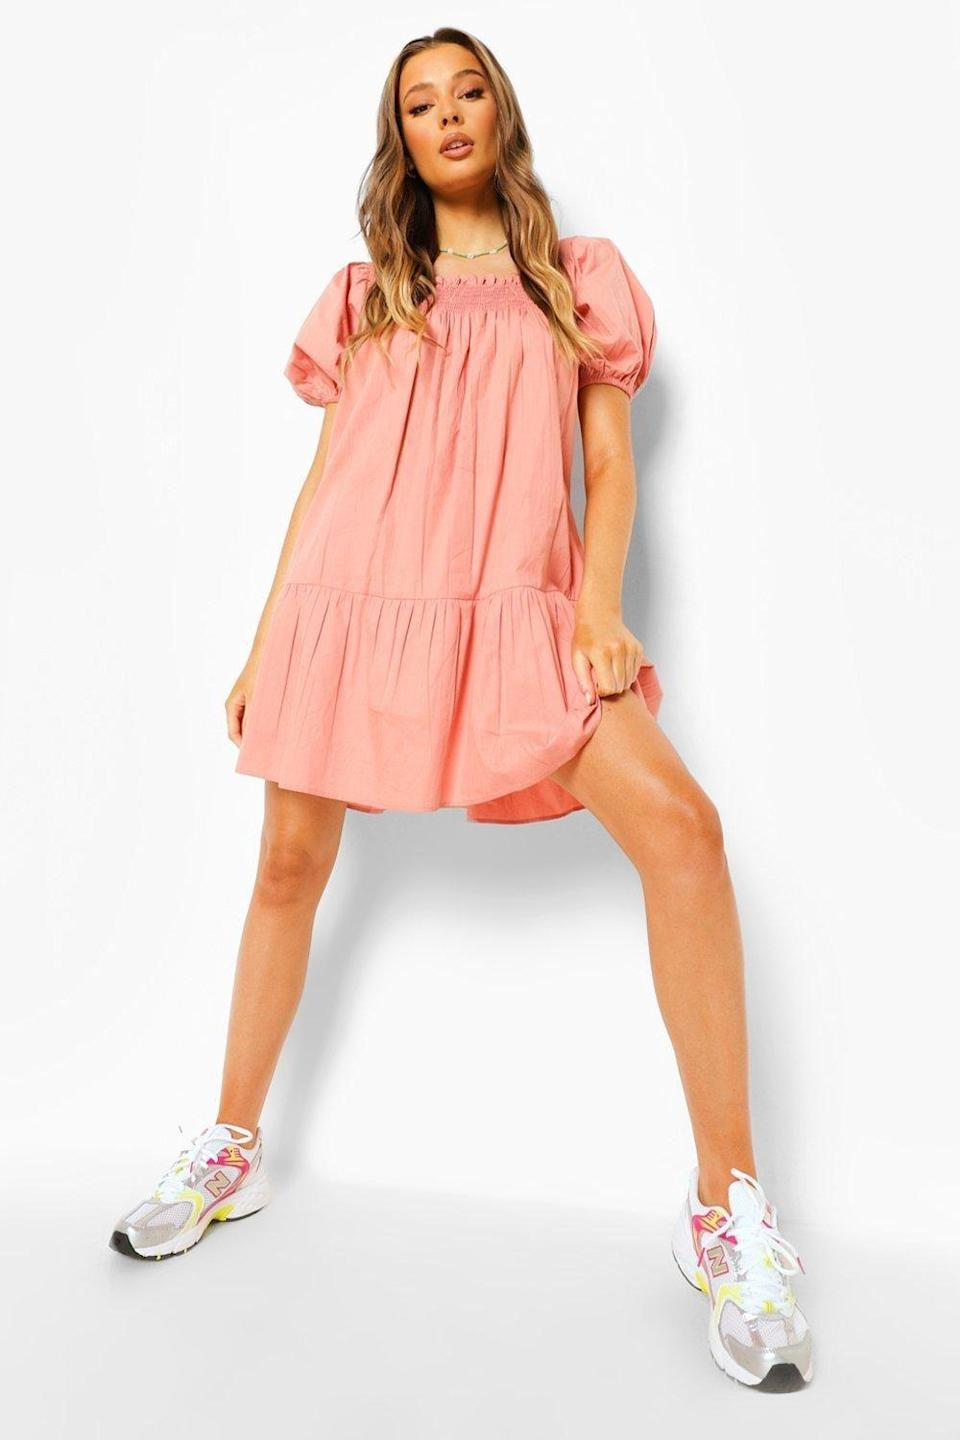 "<p><strong>Boohoo</strong></p><p><strong>$50.00</strong></p><p><a href=""https://go.redirectingat.com?id=74968X1596630&url=https%3A%2F%2Fus.boohoo.com%2Fsquare-neck-puff-sleeve-smock-dress%2FFZZ07909.html%3Fcolor%3D152&sref=https%3A%2F%2Fwww.cosmopolitan.com%2Fstyle-beauty%2Ffashion%2Fg35681349%2Fboohoo-50-percent-off-hauliday-sale%2F"" rel=""nofollow noopener"" target=""_blank"" data-ylk=""slk:Shop Now"" class=""link rapid-noclick-resp"">Shop Now</a></p>"